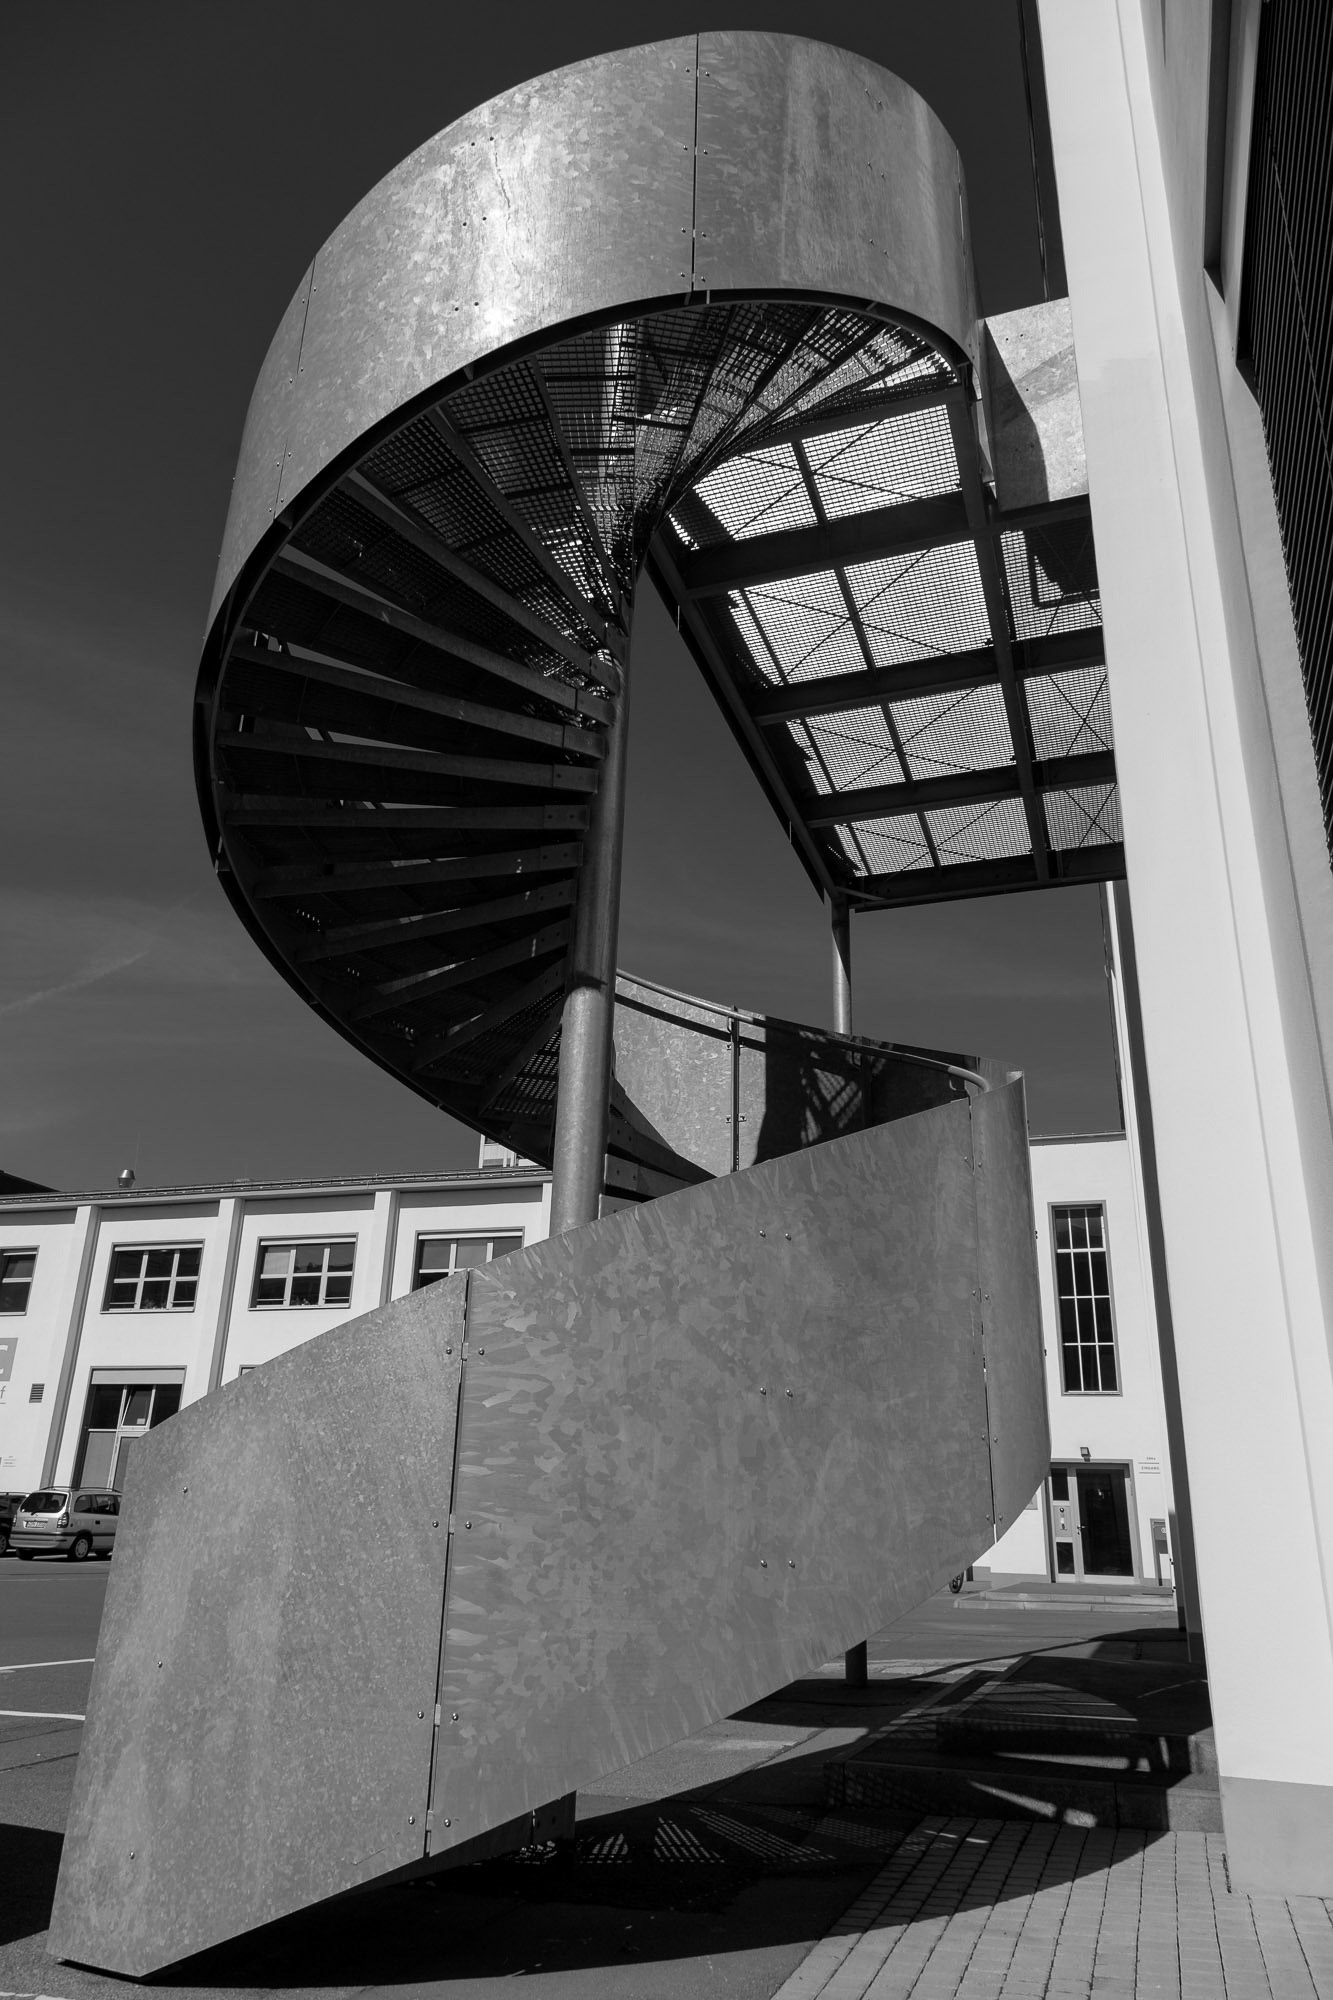 Cthulhusnet / spiral staircase